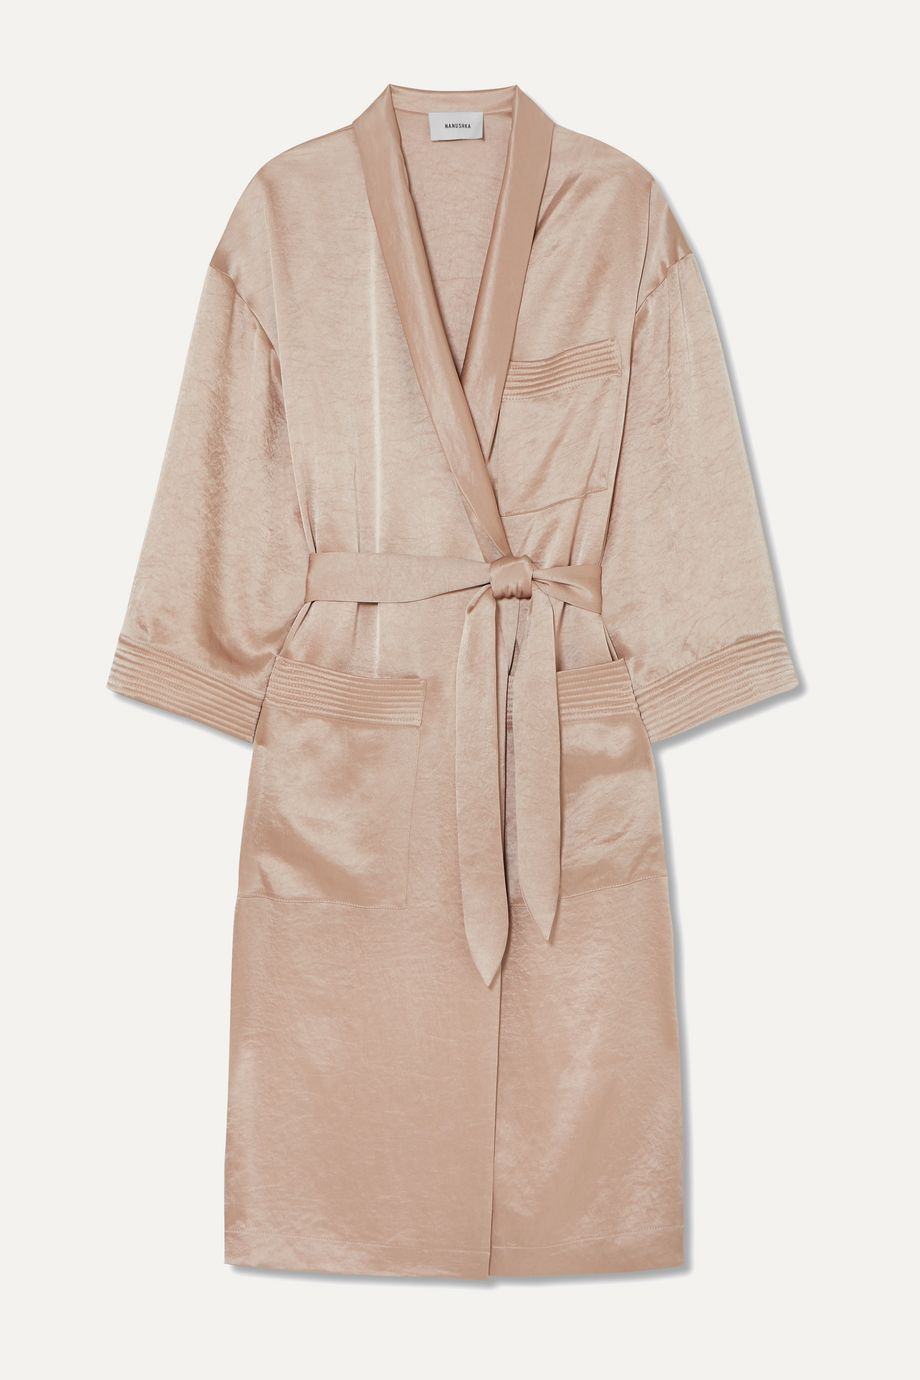 Nanushka Hammered-satin robe